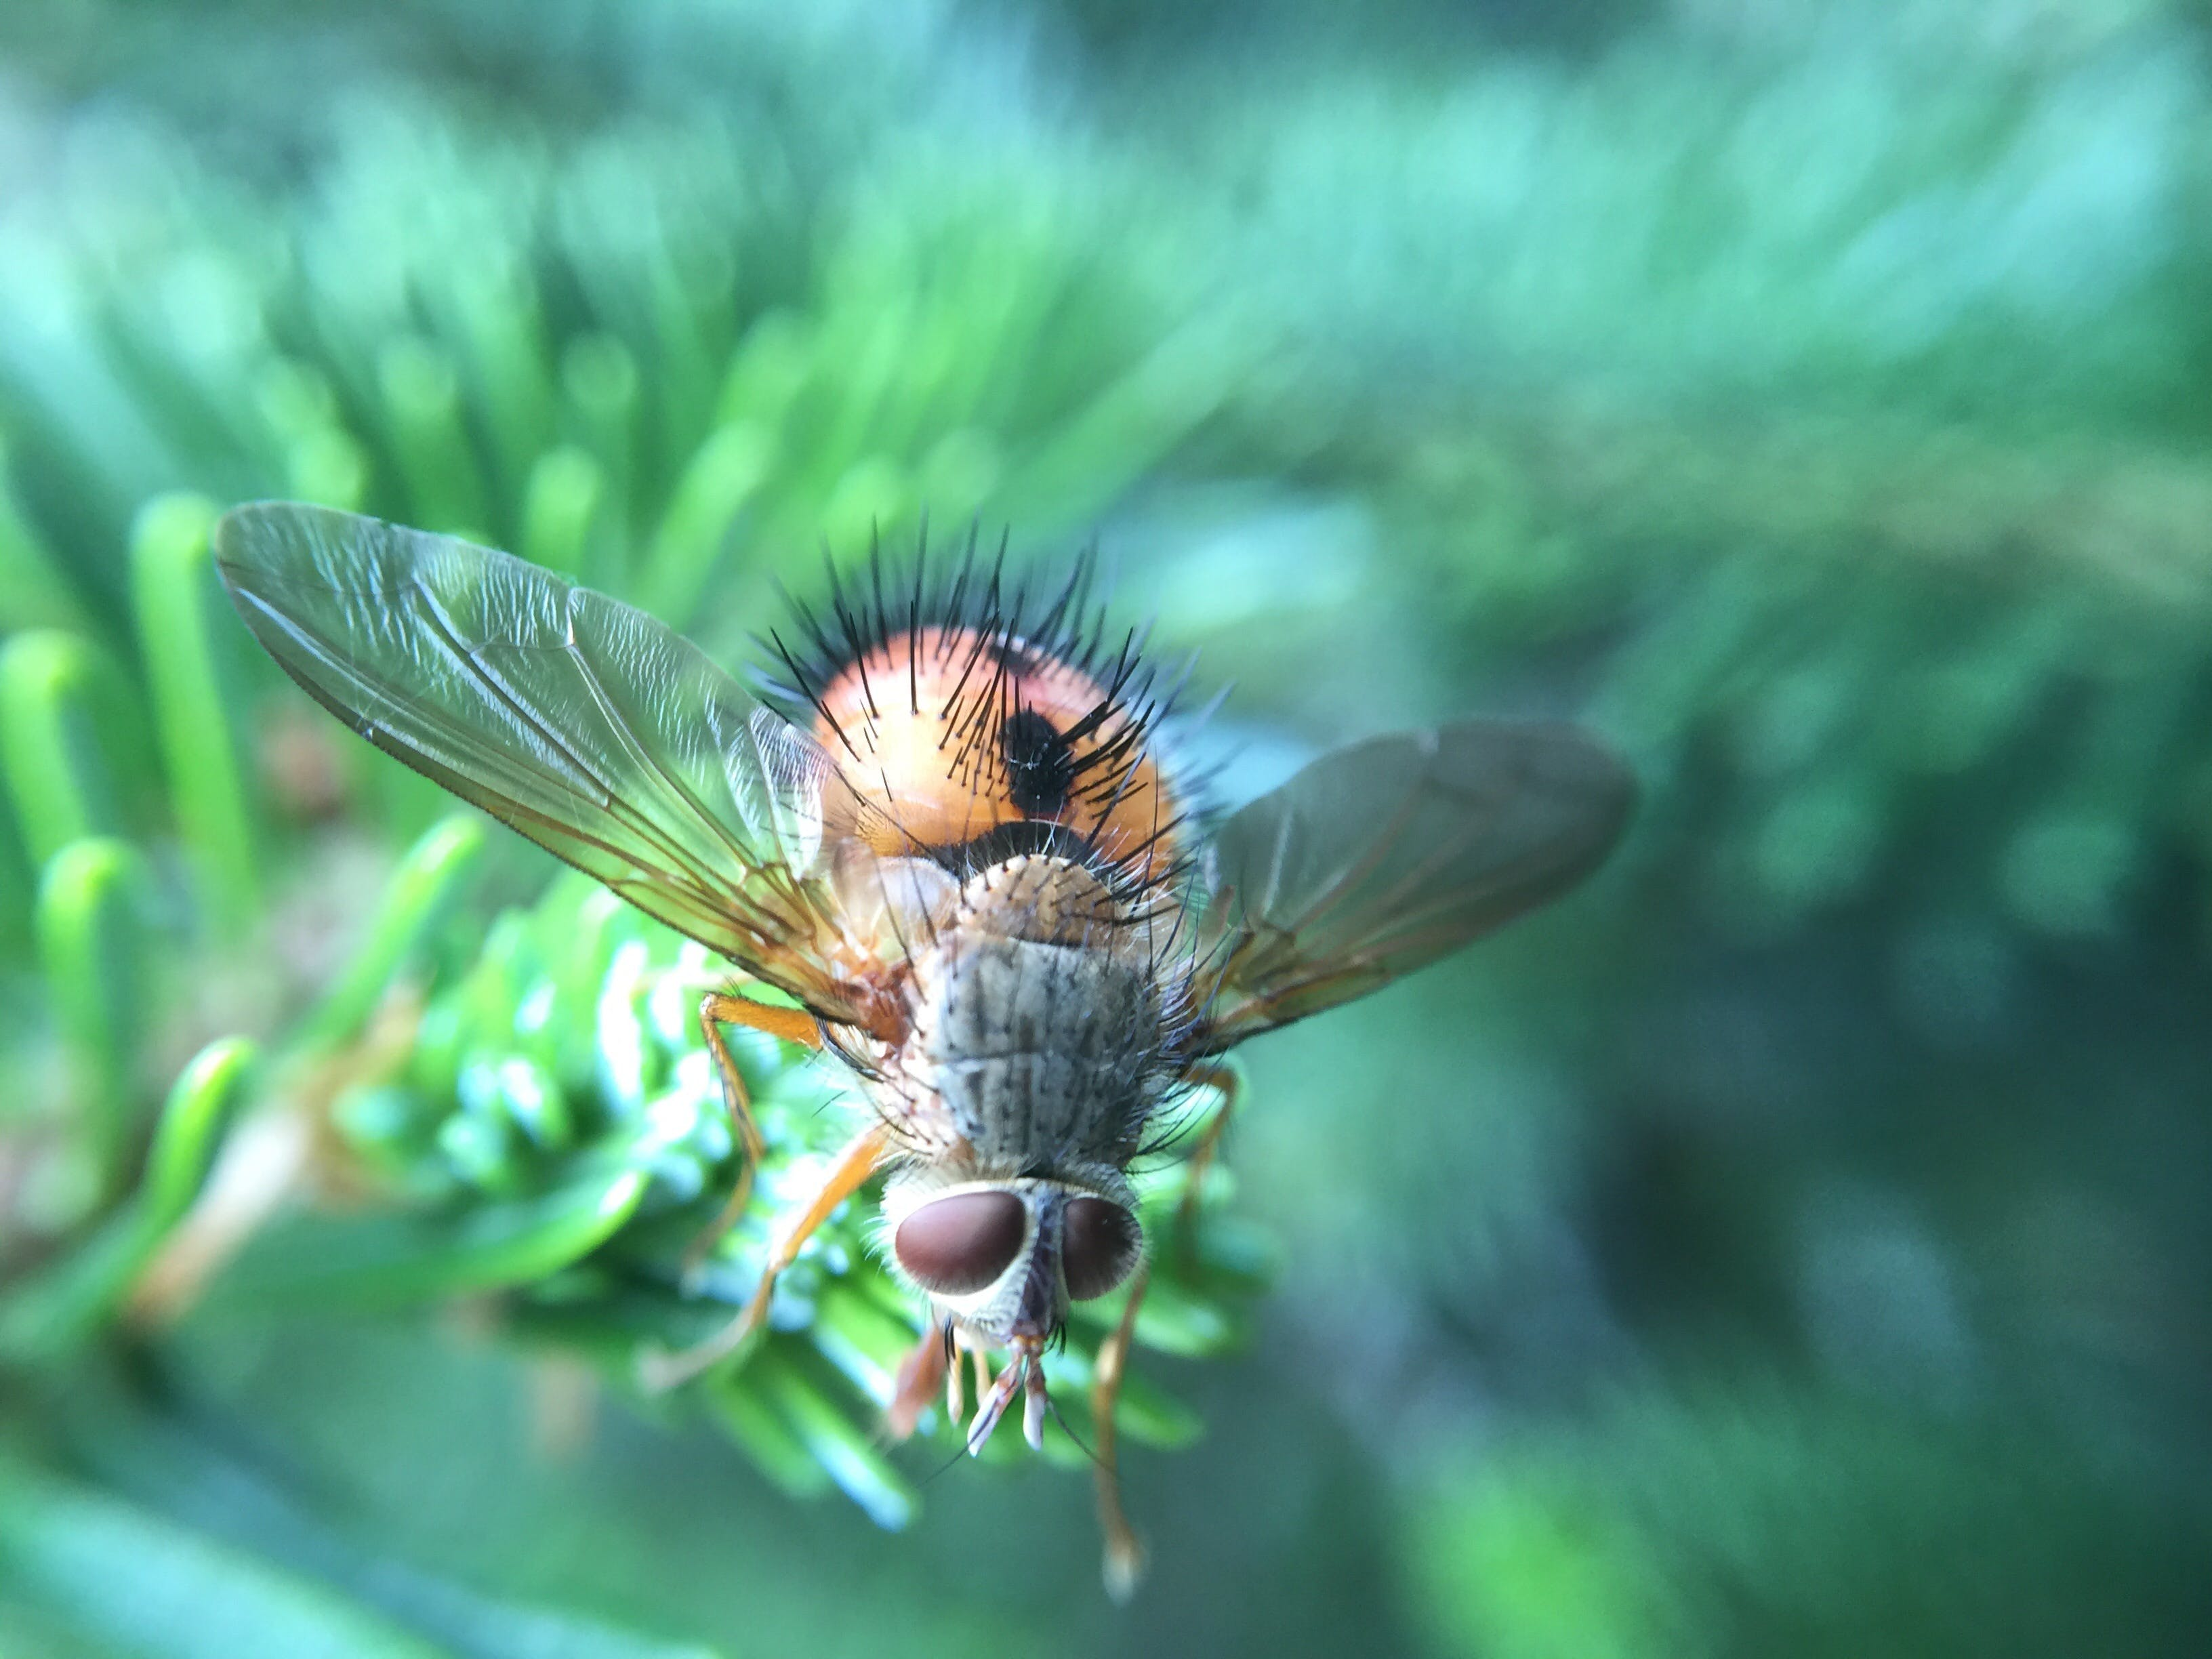 Free stock photo of insect, macro, wings, close-up